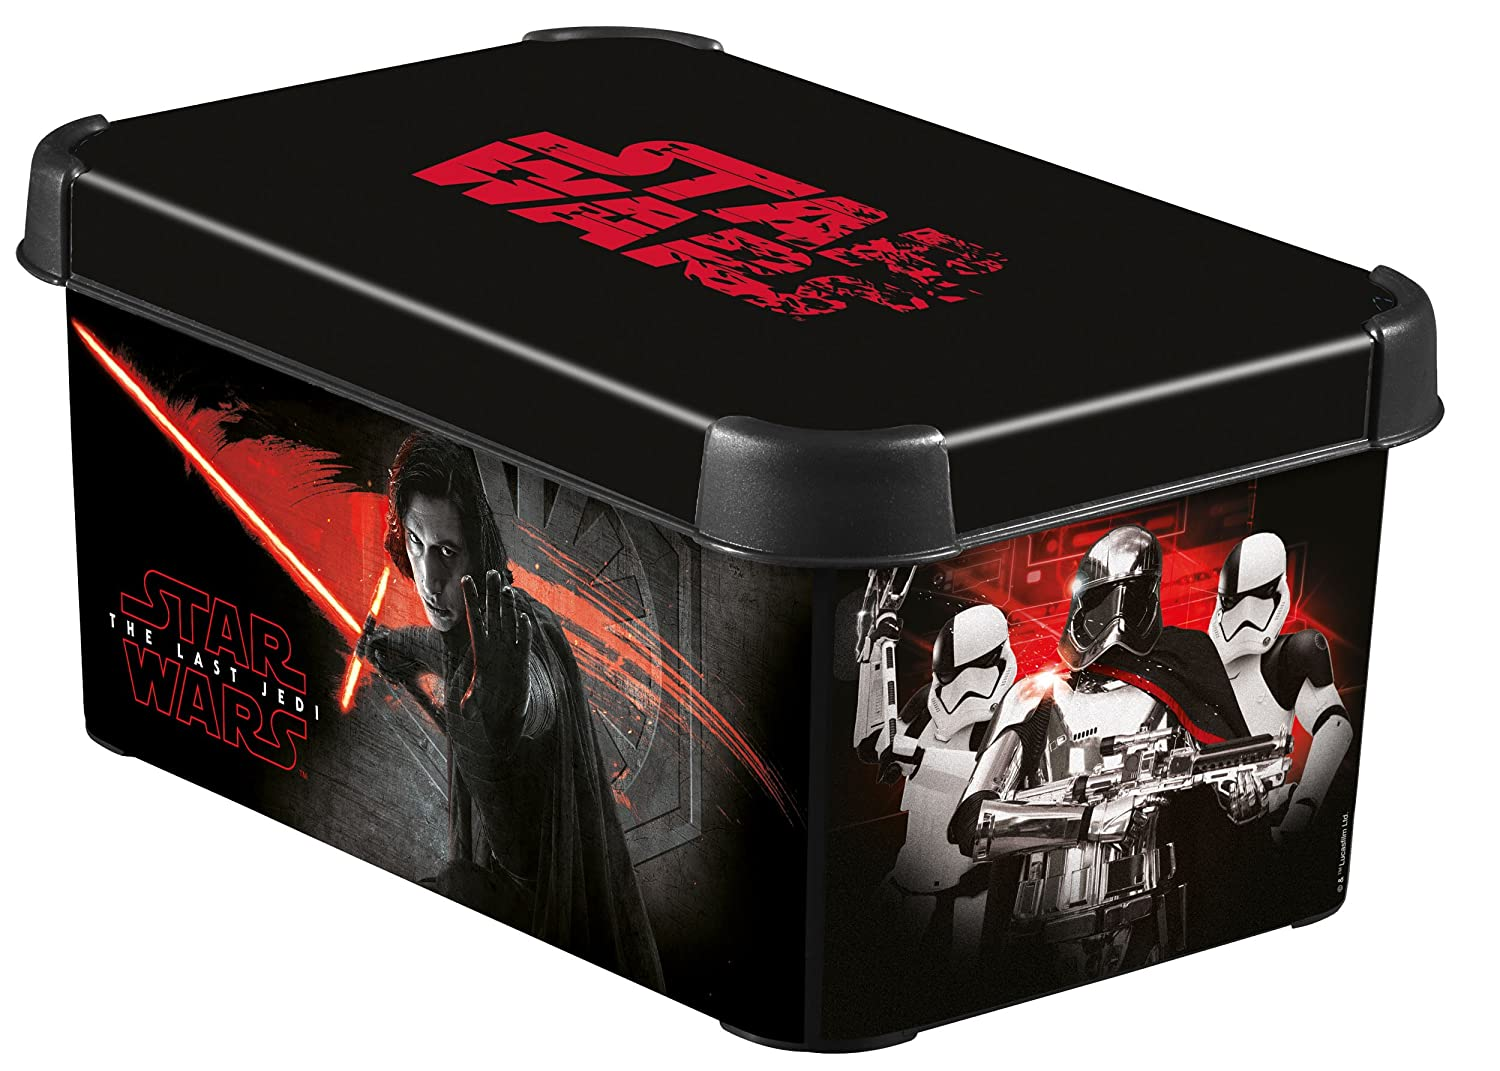 Curver 235964 Decorative Stockholm Box Star Wars s-décor 8, Plastic, black, 29.5 x 19.3 x 13.8 cm